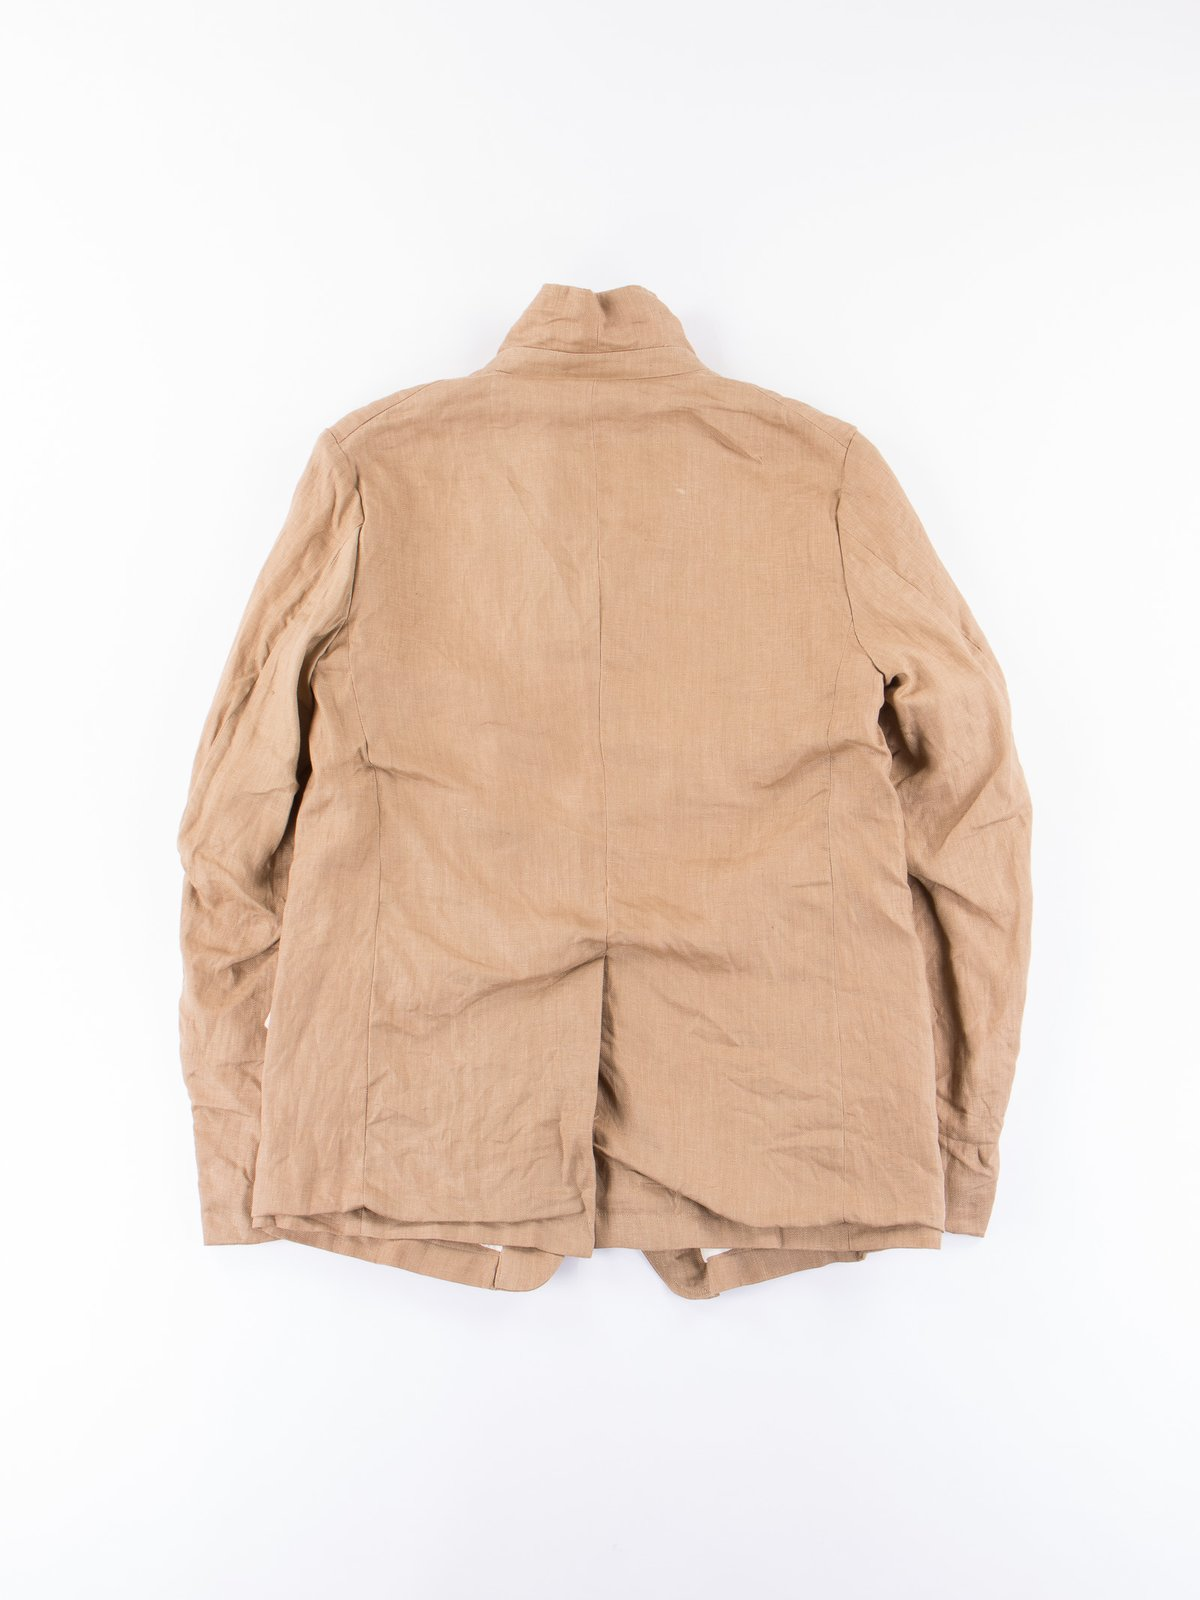 Beige Linen Old Potter Jacket - Image 5